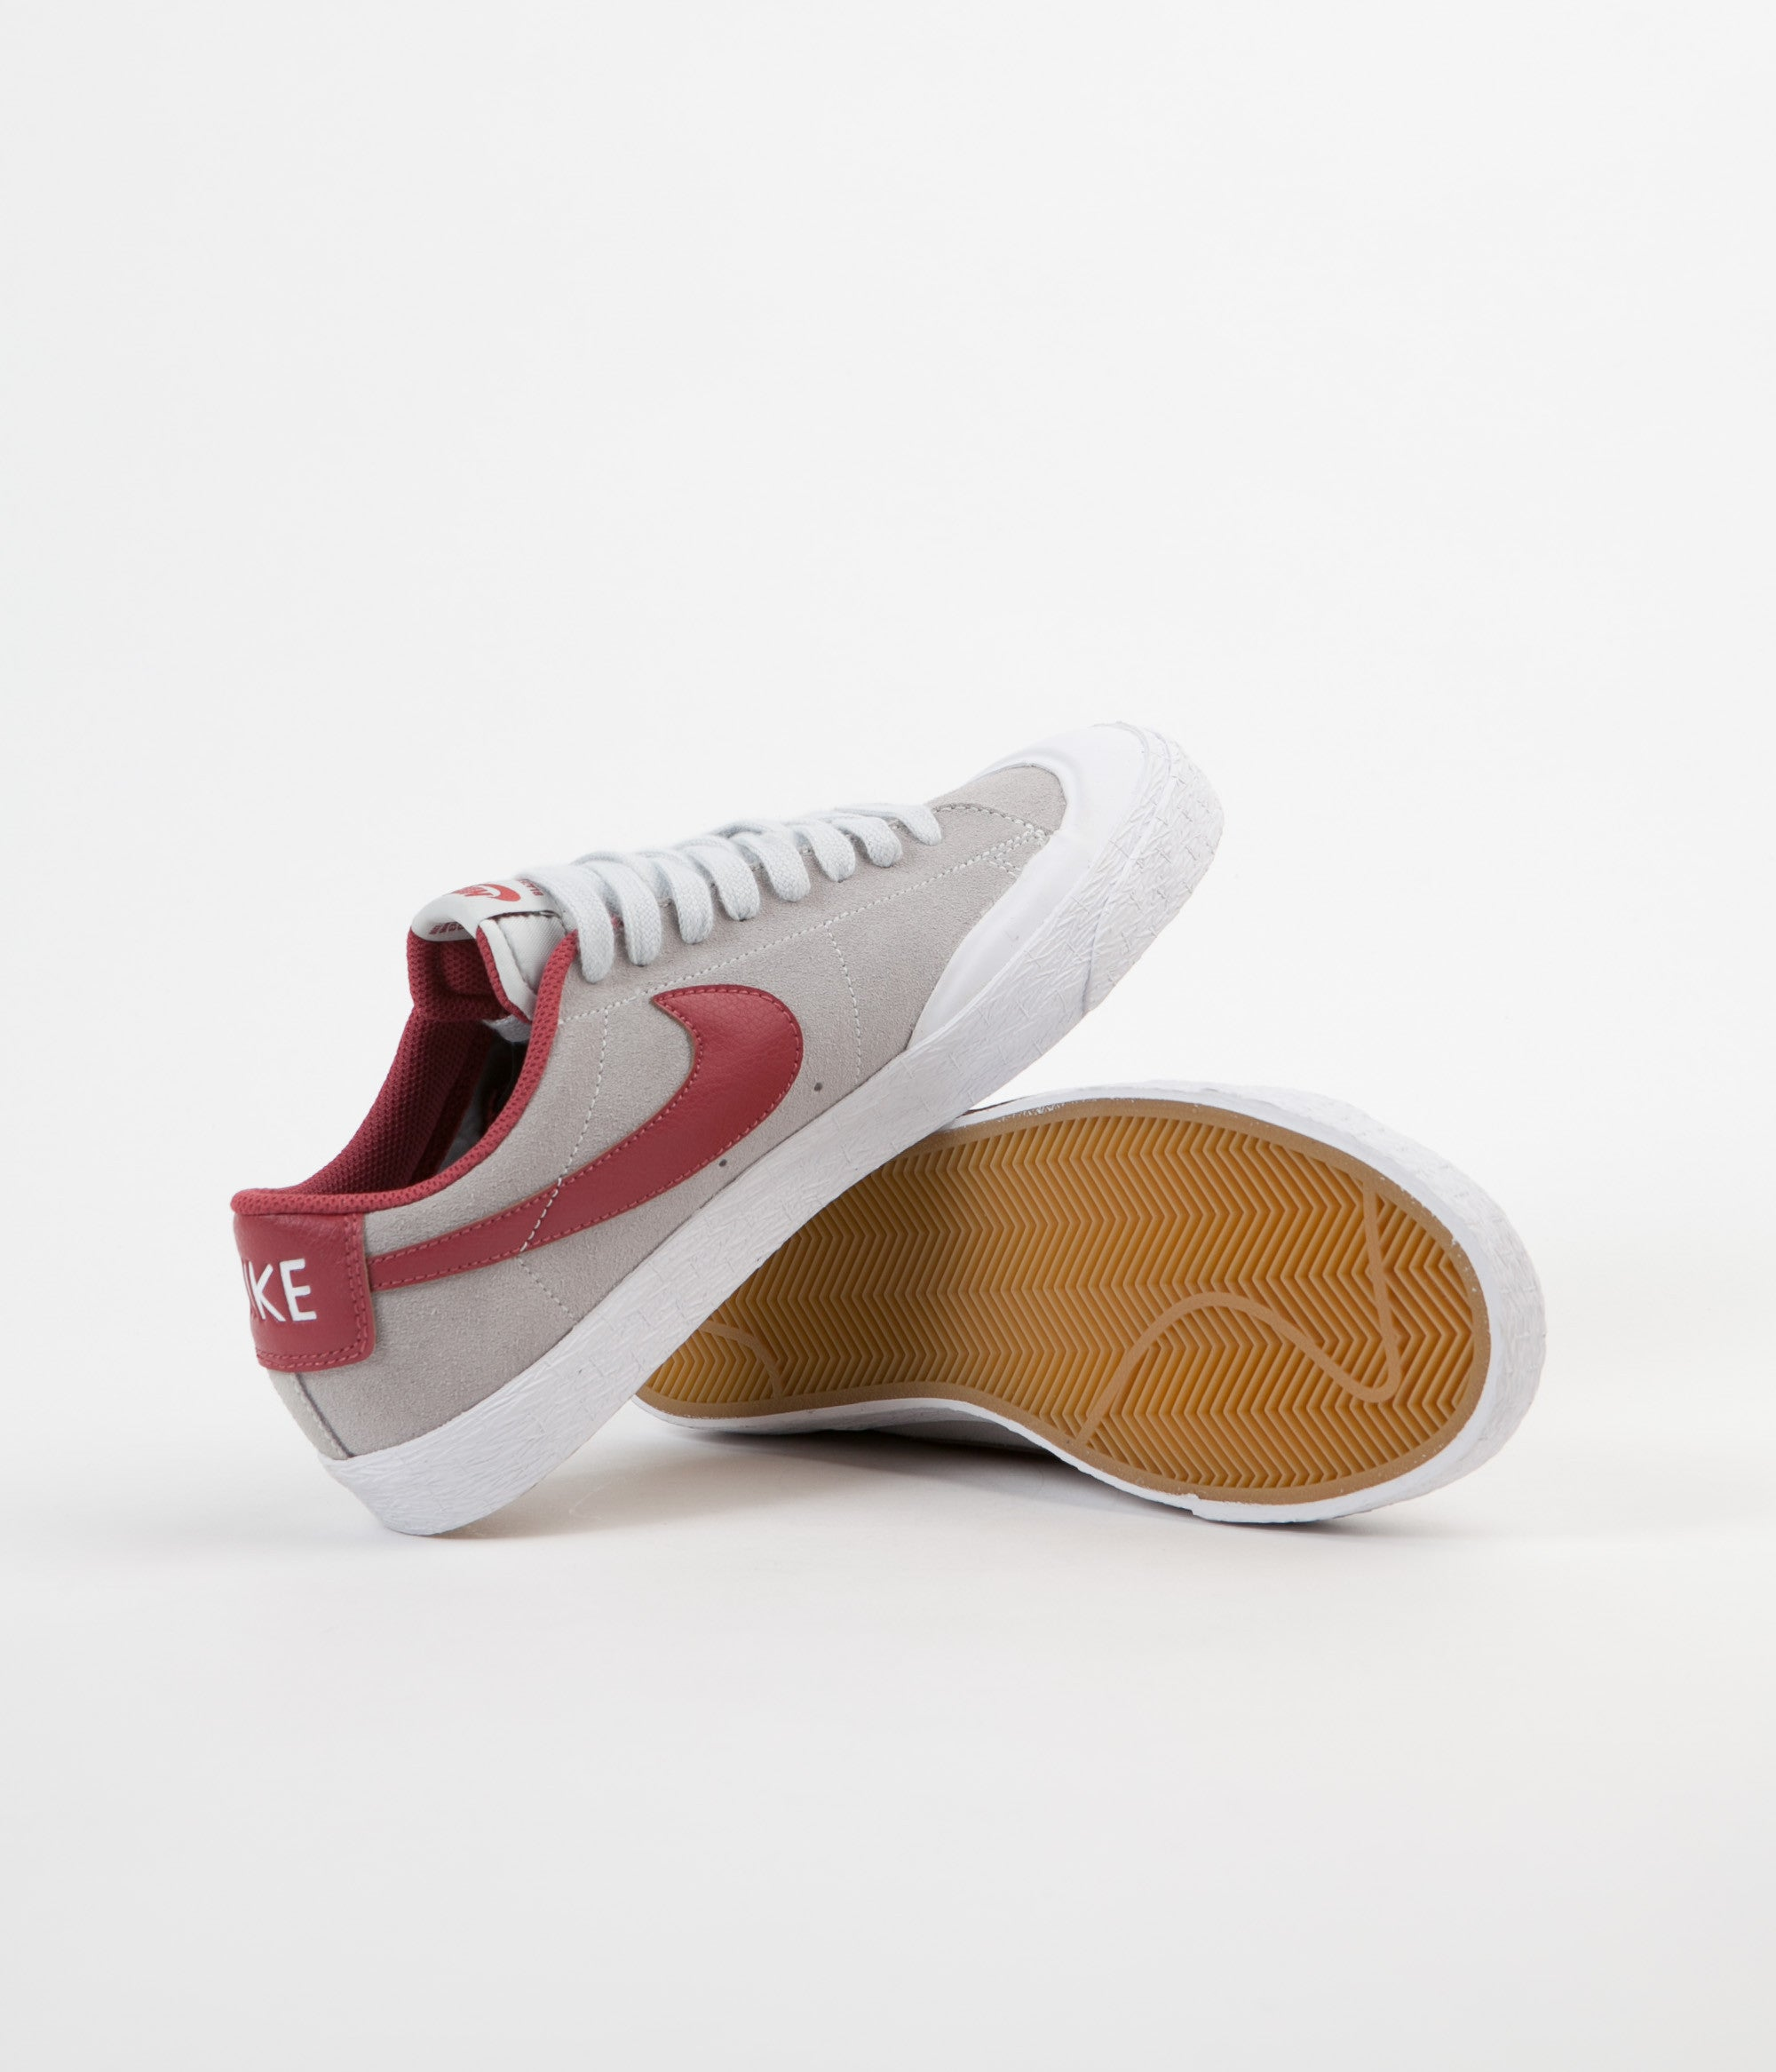 Nike SB Blazer Low XT Shoes - Pure Platinum / Cedar - White